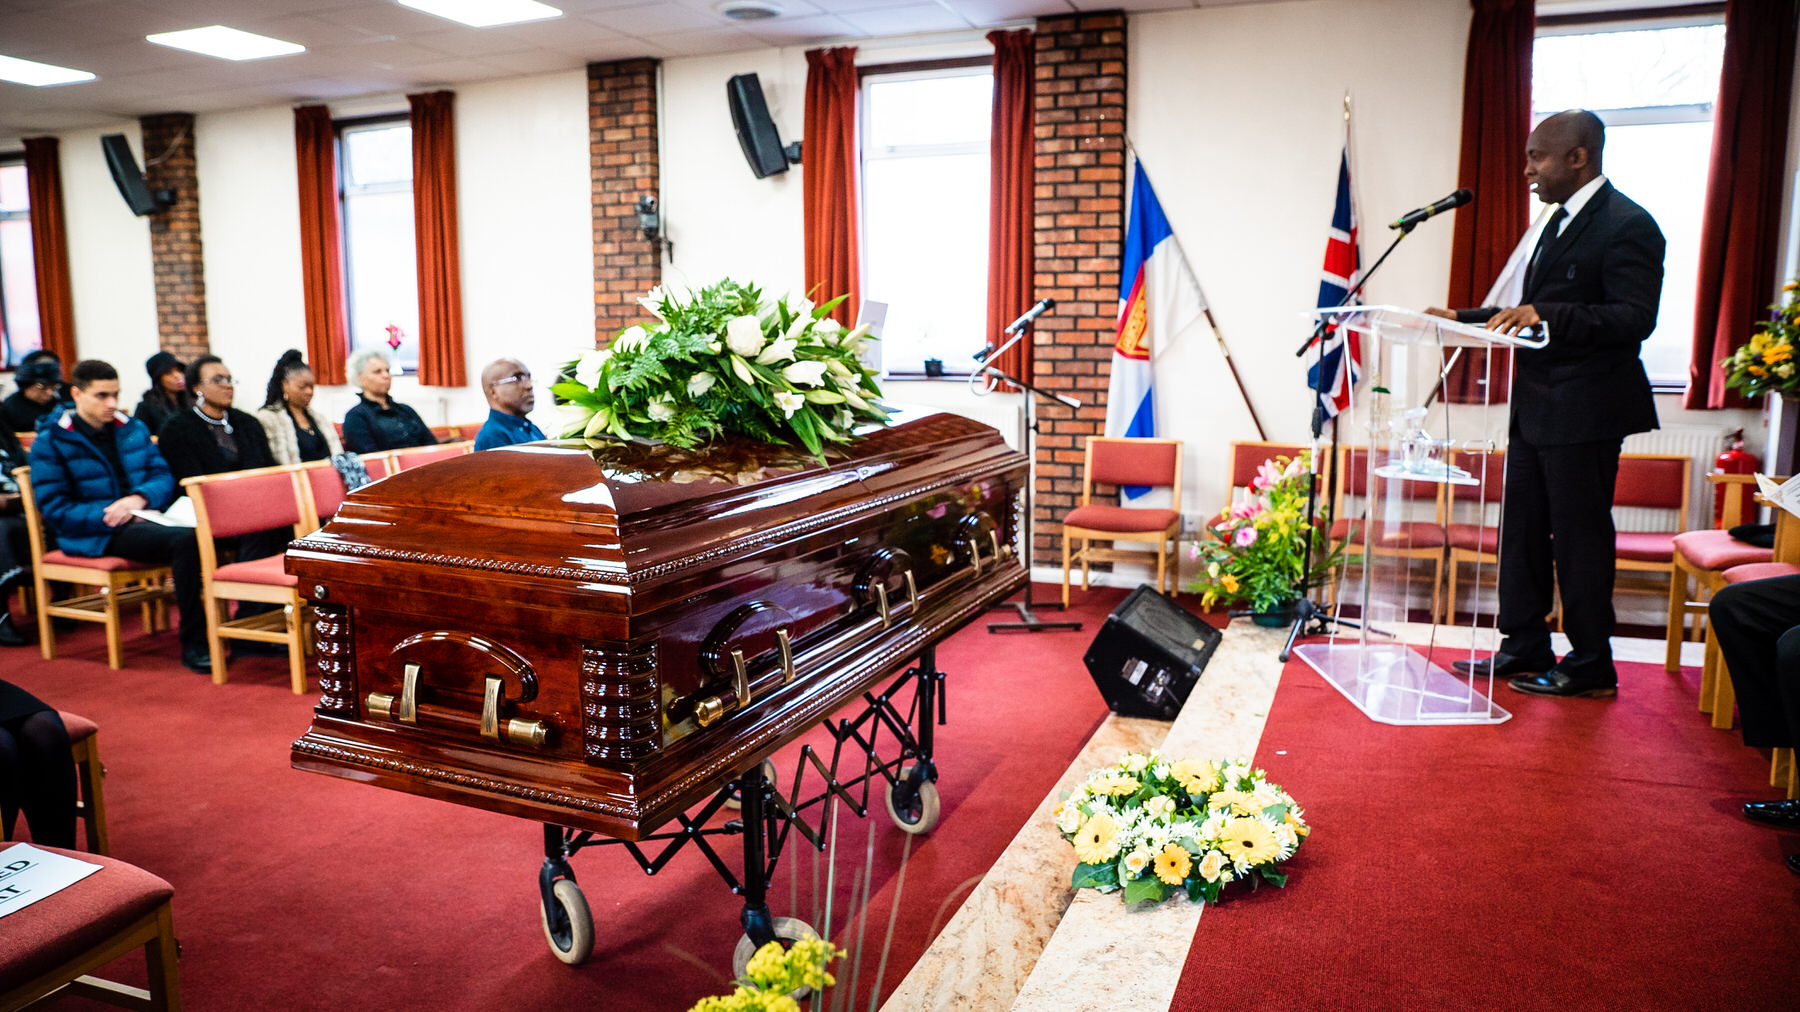 Funeral Photographer at New Southgate Cemetery and Crematorium